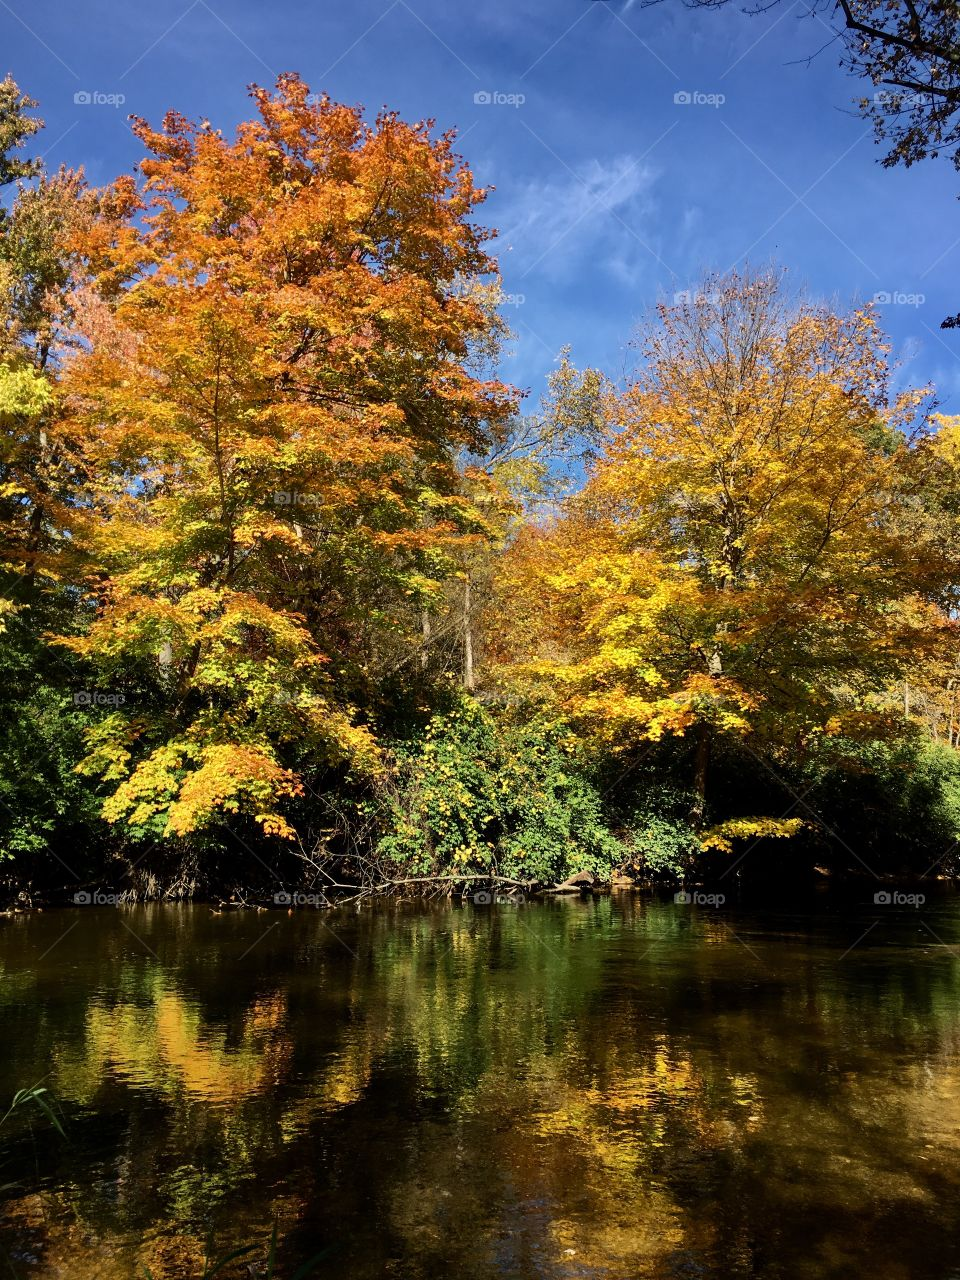 Clinton River and beautiful fall colors!